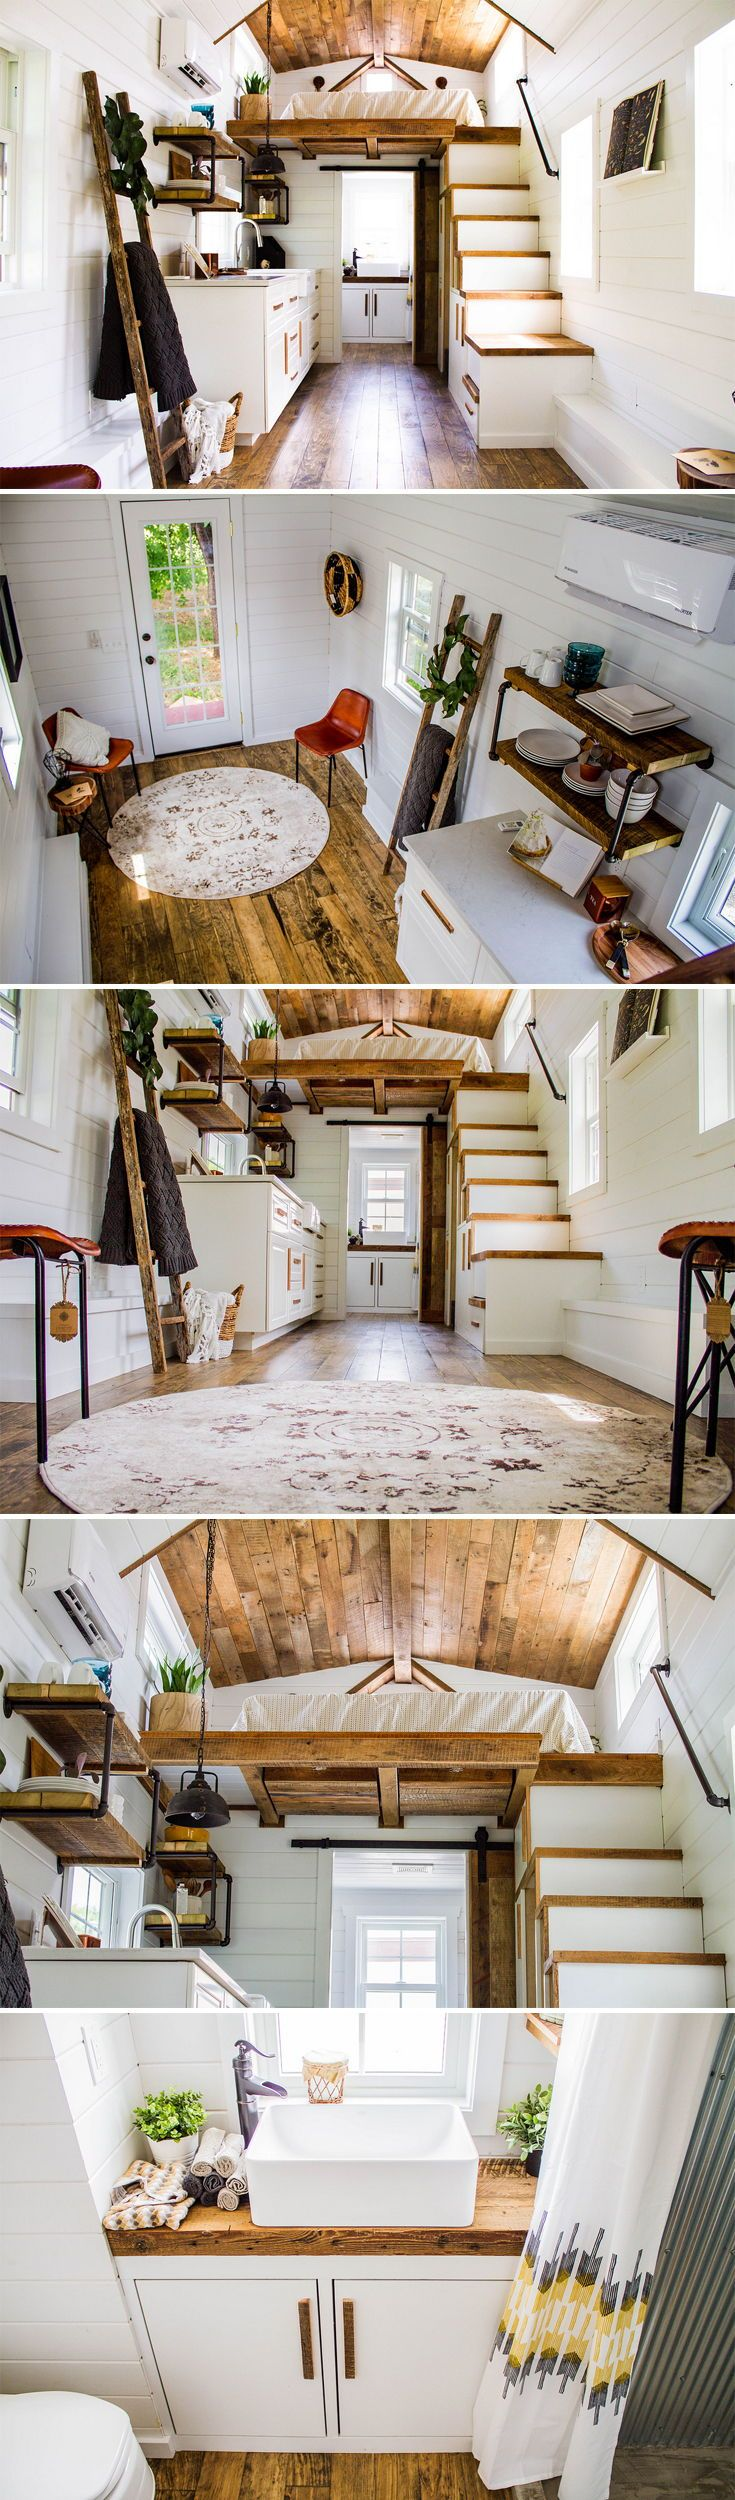 17494 best Ideas for a future Home images on Pinterest | Small ...